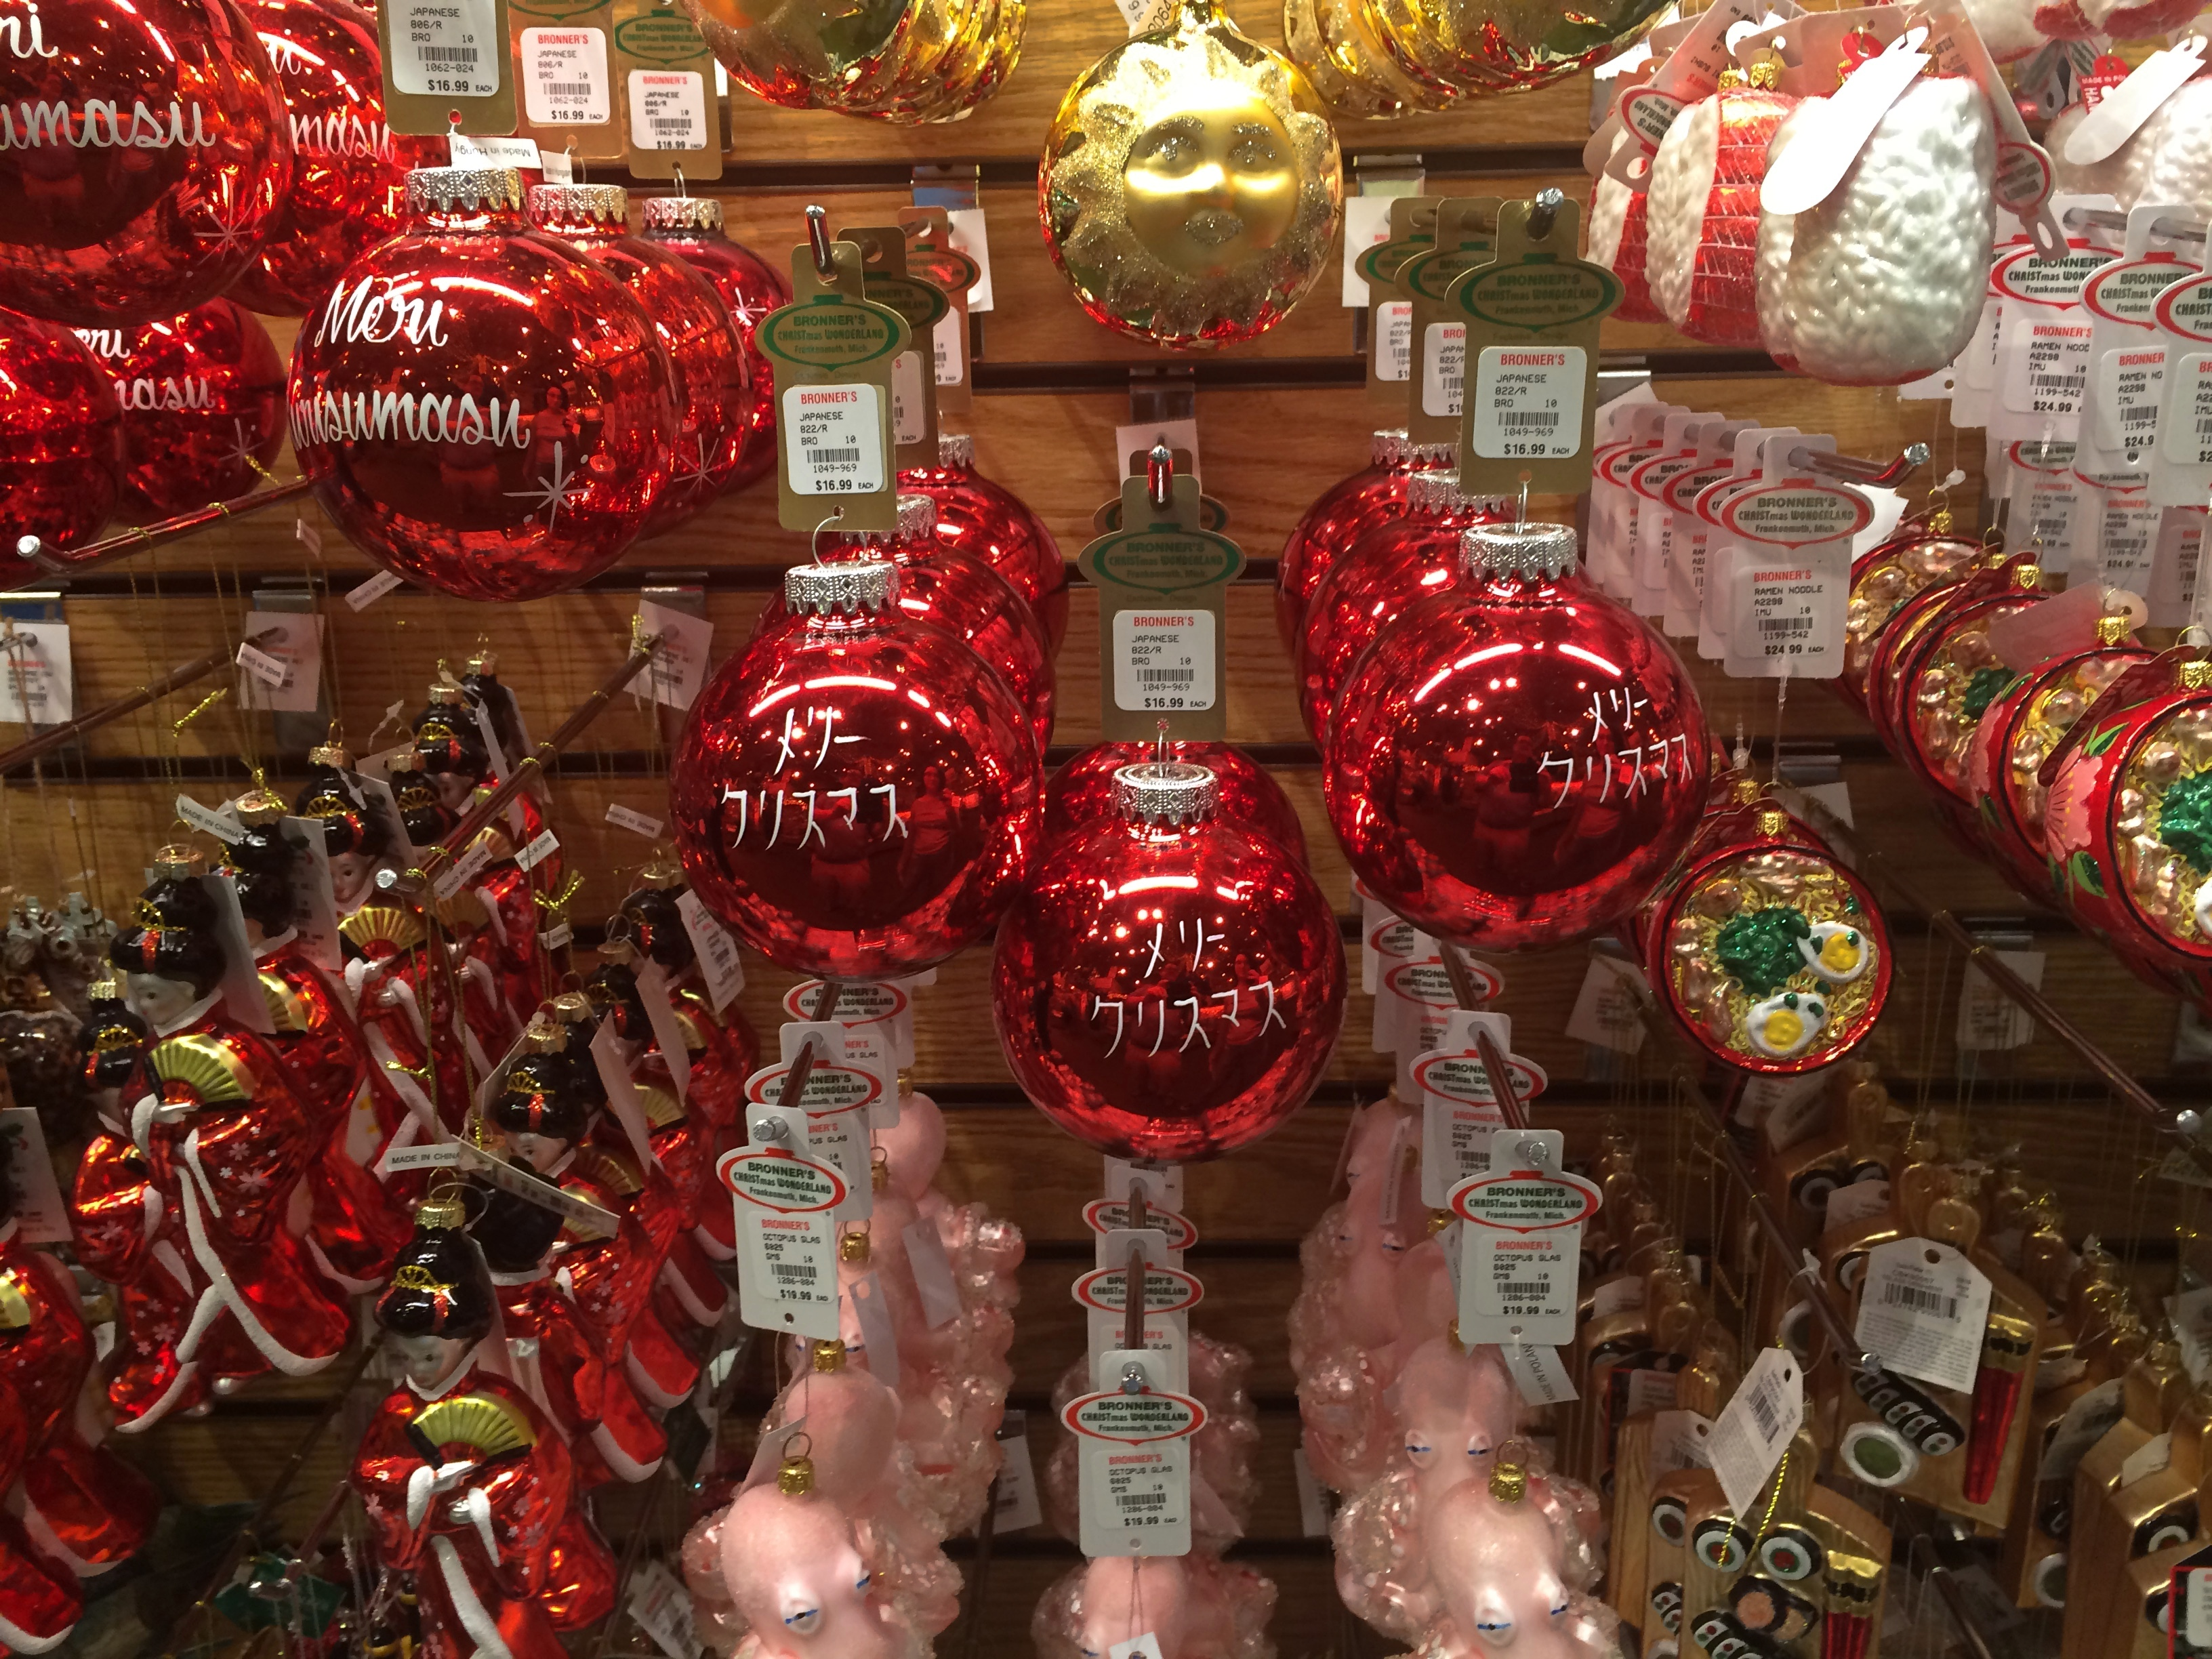 Bronners Christmas Ornaments.Bronner S Christmas Wonderland Been There Seen That